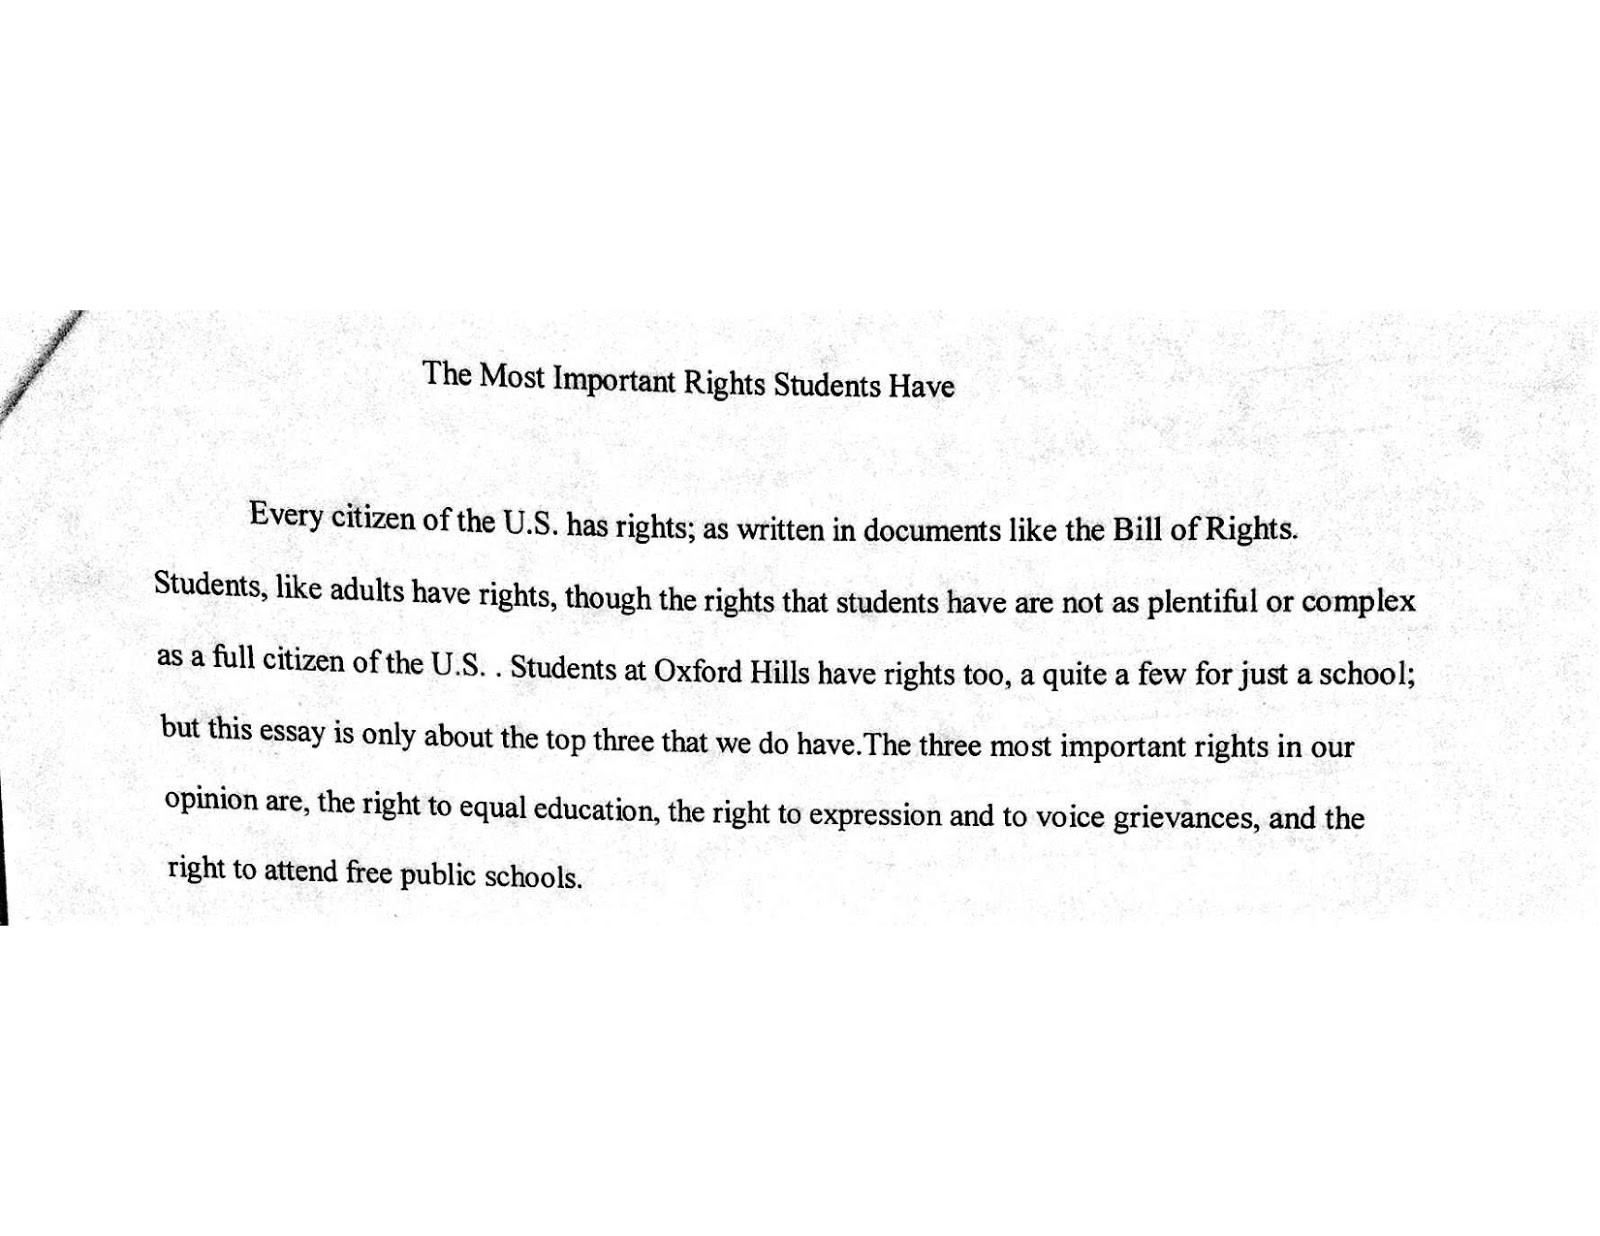 012 How To Write Dialogue In An Essay Narrative With Singular Between Two Characters Full